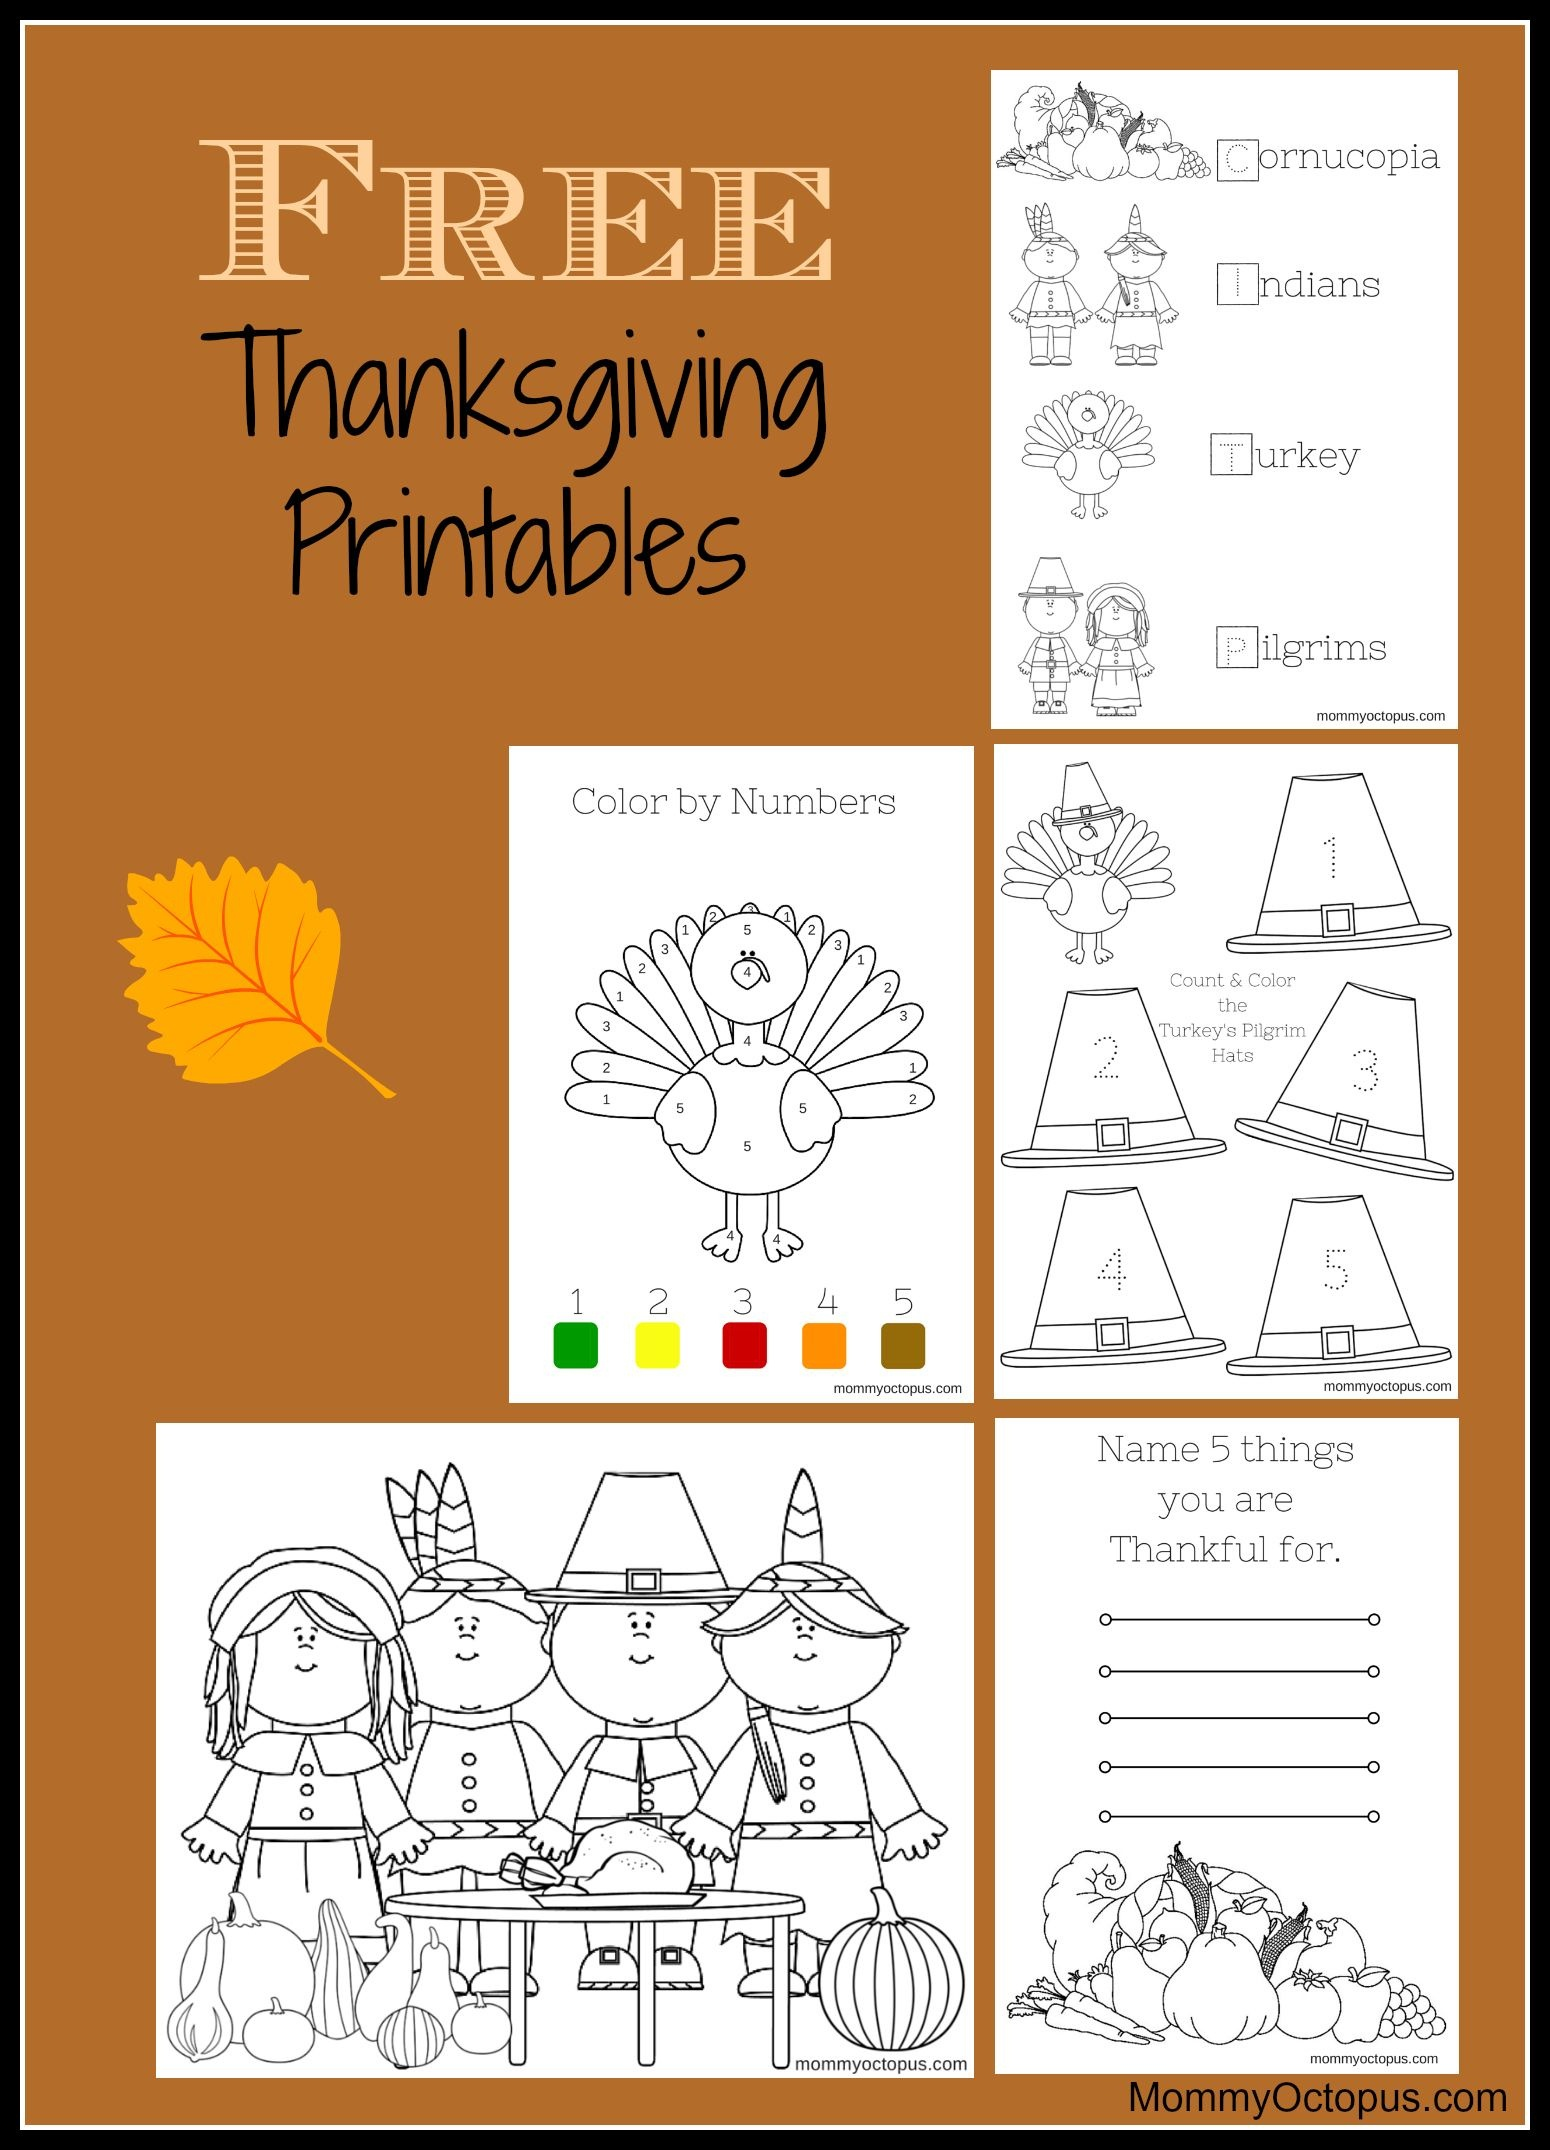 Free Thanksgiving Printable Activity Sheets!   Thanksgiving & Fall - Free Printable Thanksgiving Activities For Preschoolers